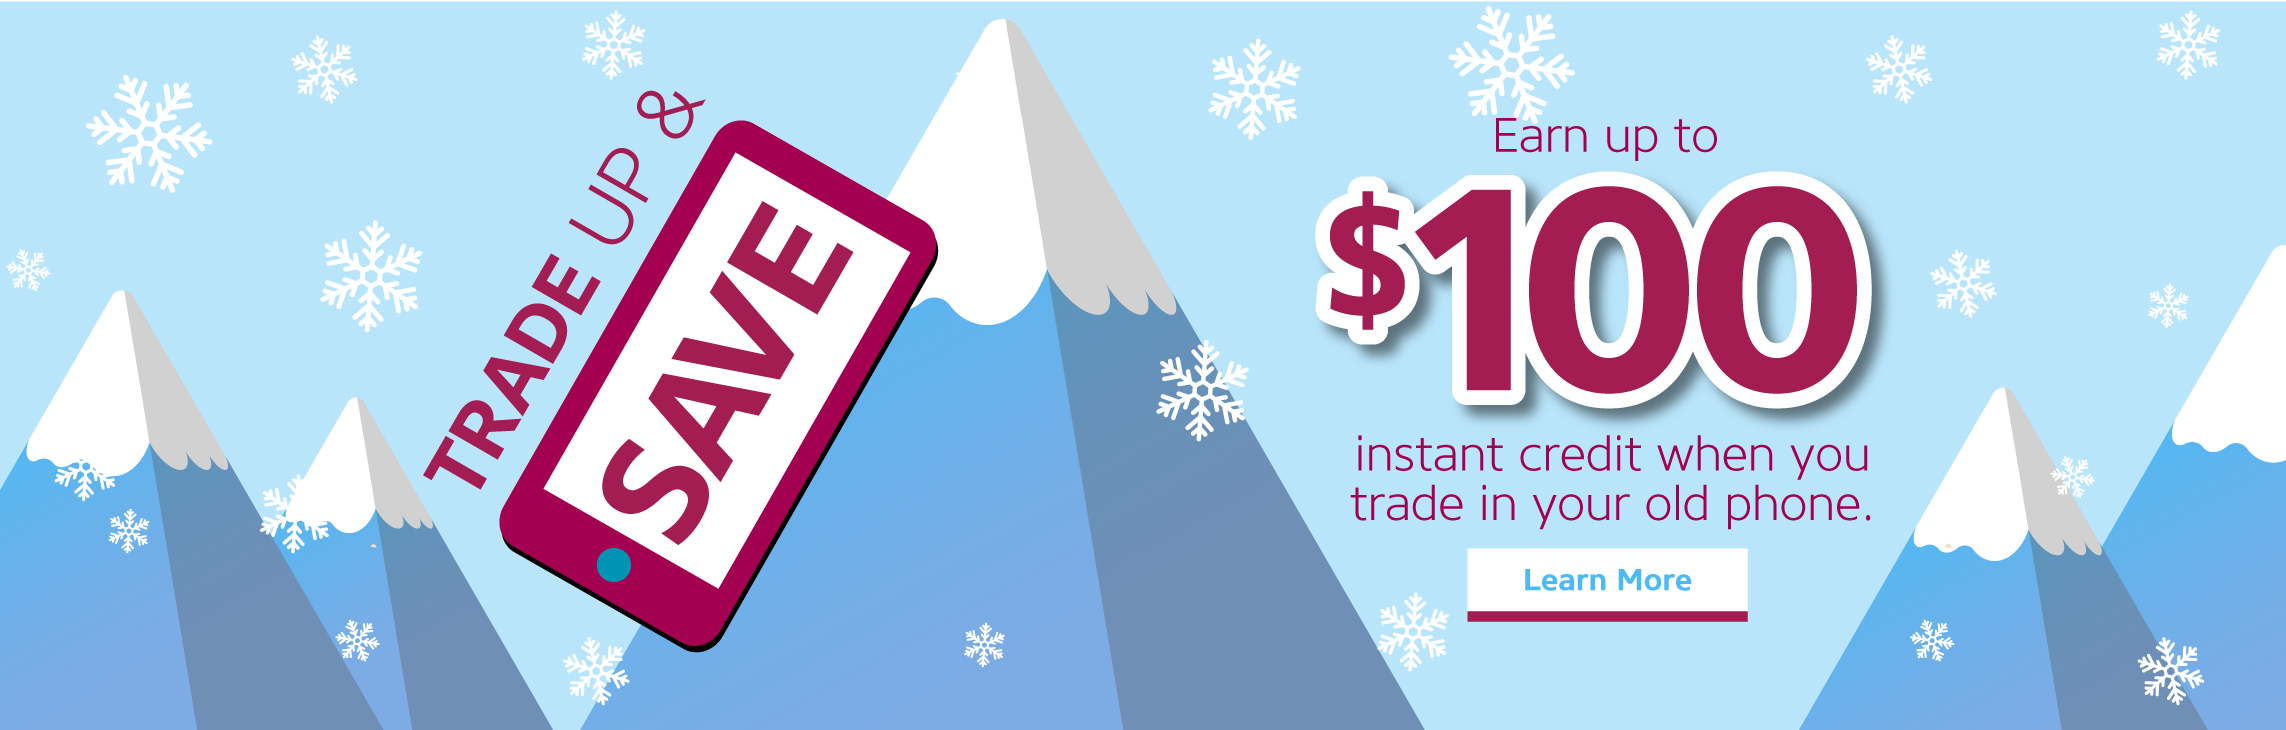 Trade Up & Save - Earn up to $100 instant credit when you trade in your old phone